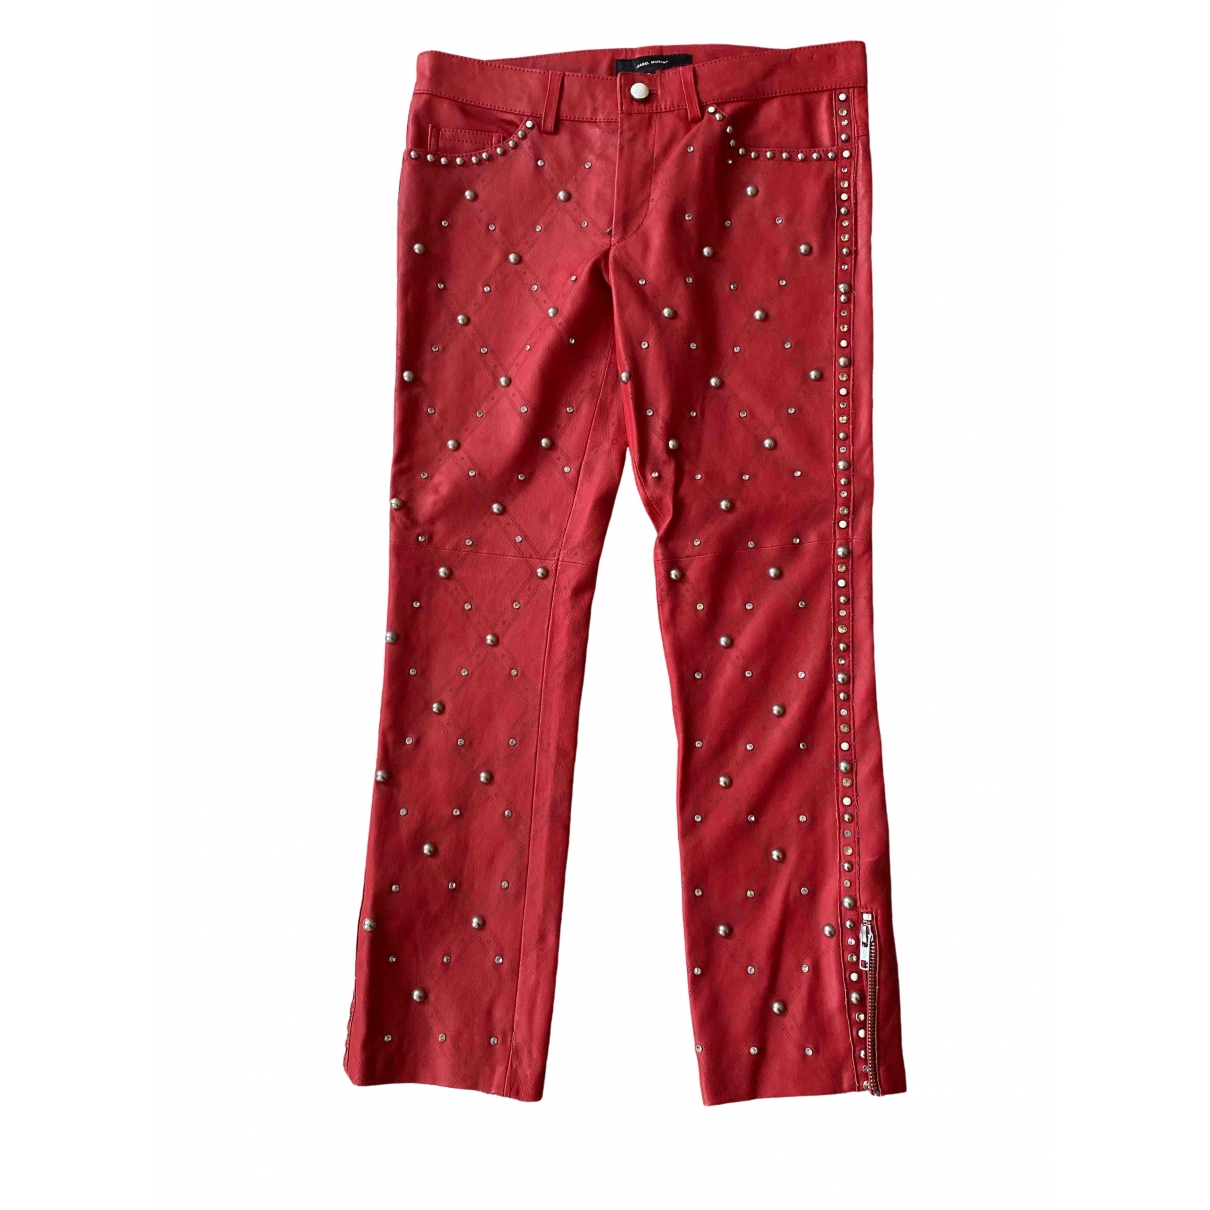 Isabel Marant \N Red Leather Trousers for Women 38 FR